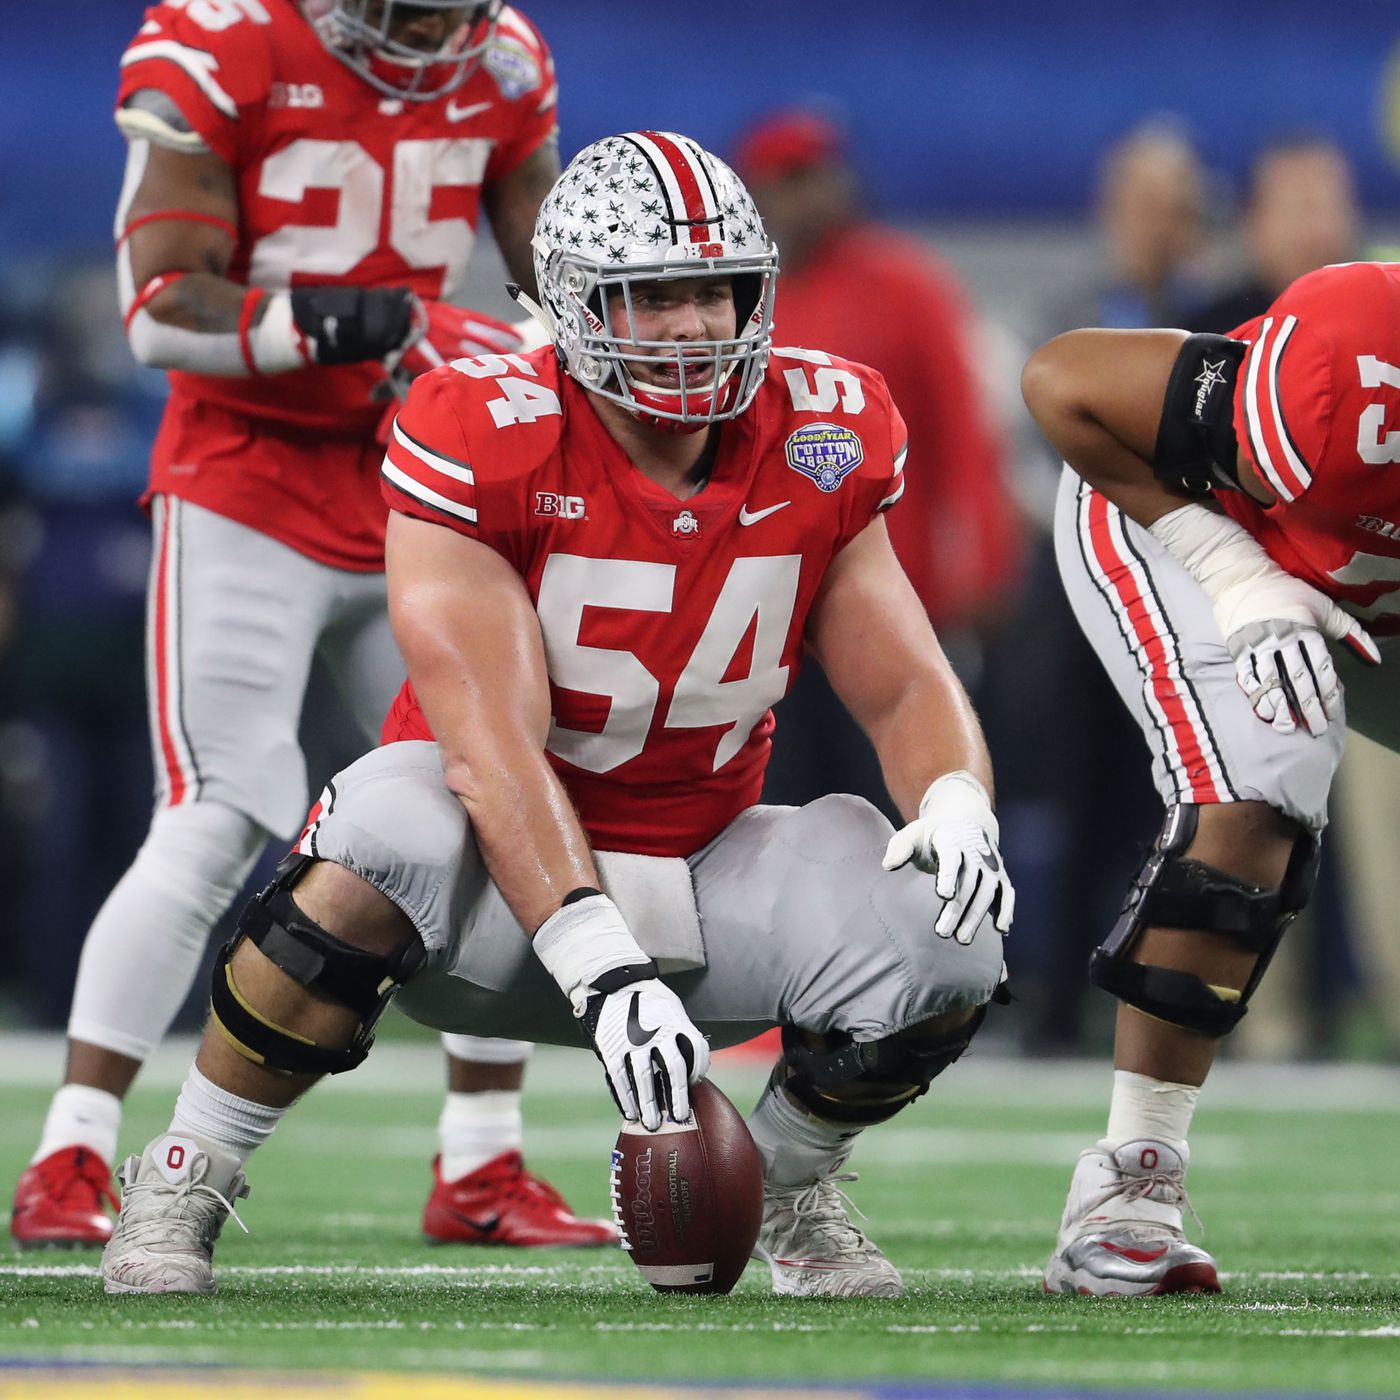 Film room scouting report on Ohio State guard/center Billy Price ...